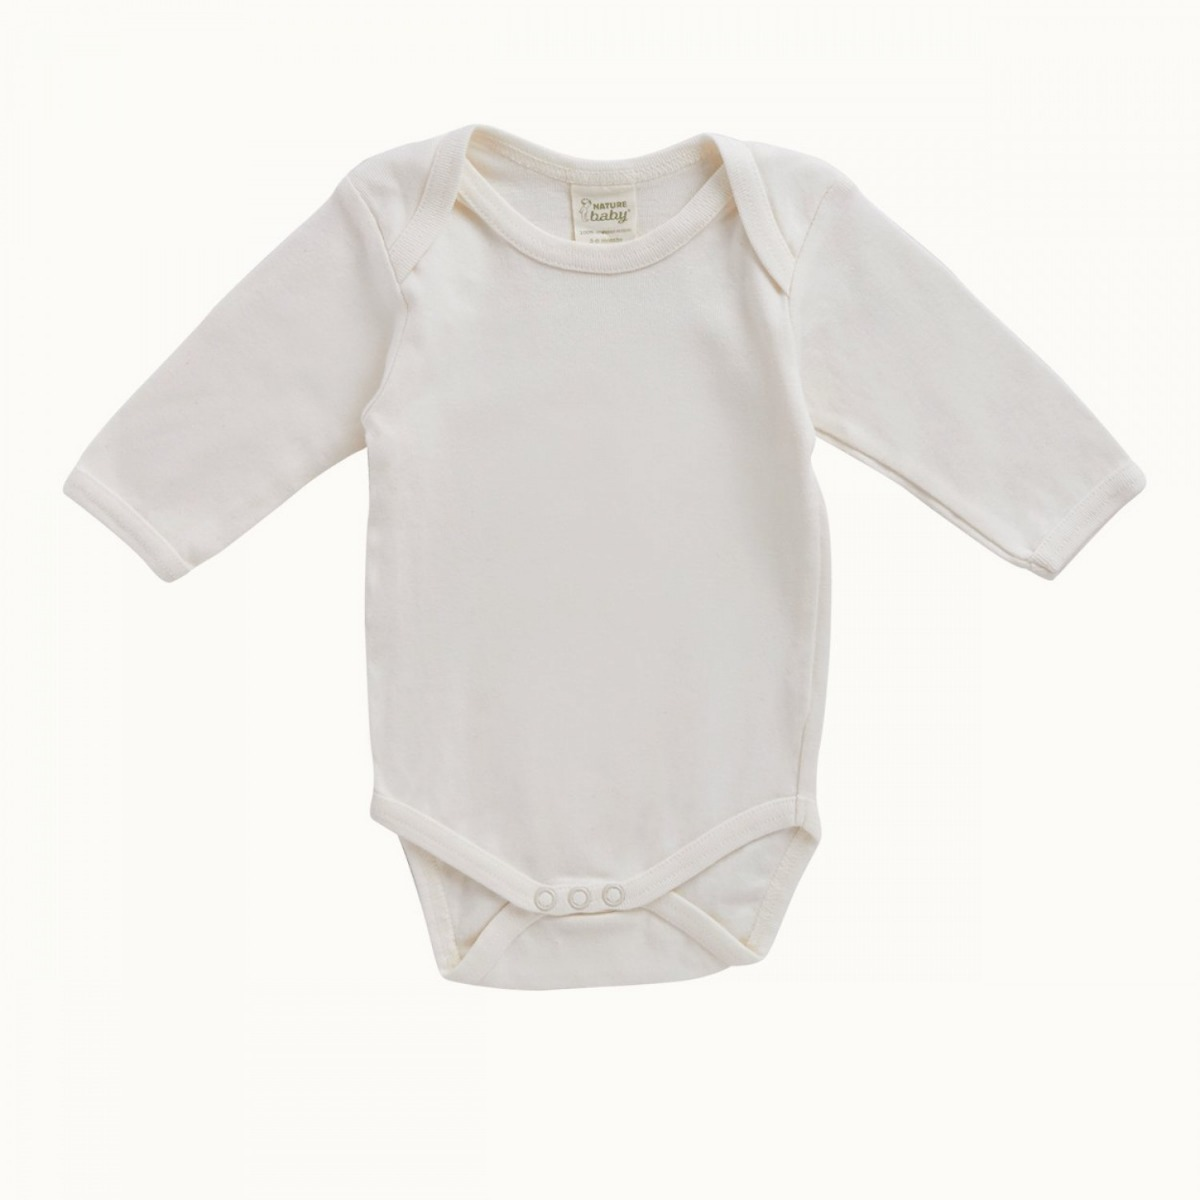 Nature Baby Organic Cotton Long Sleeve Bodysuit 3-6M